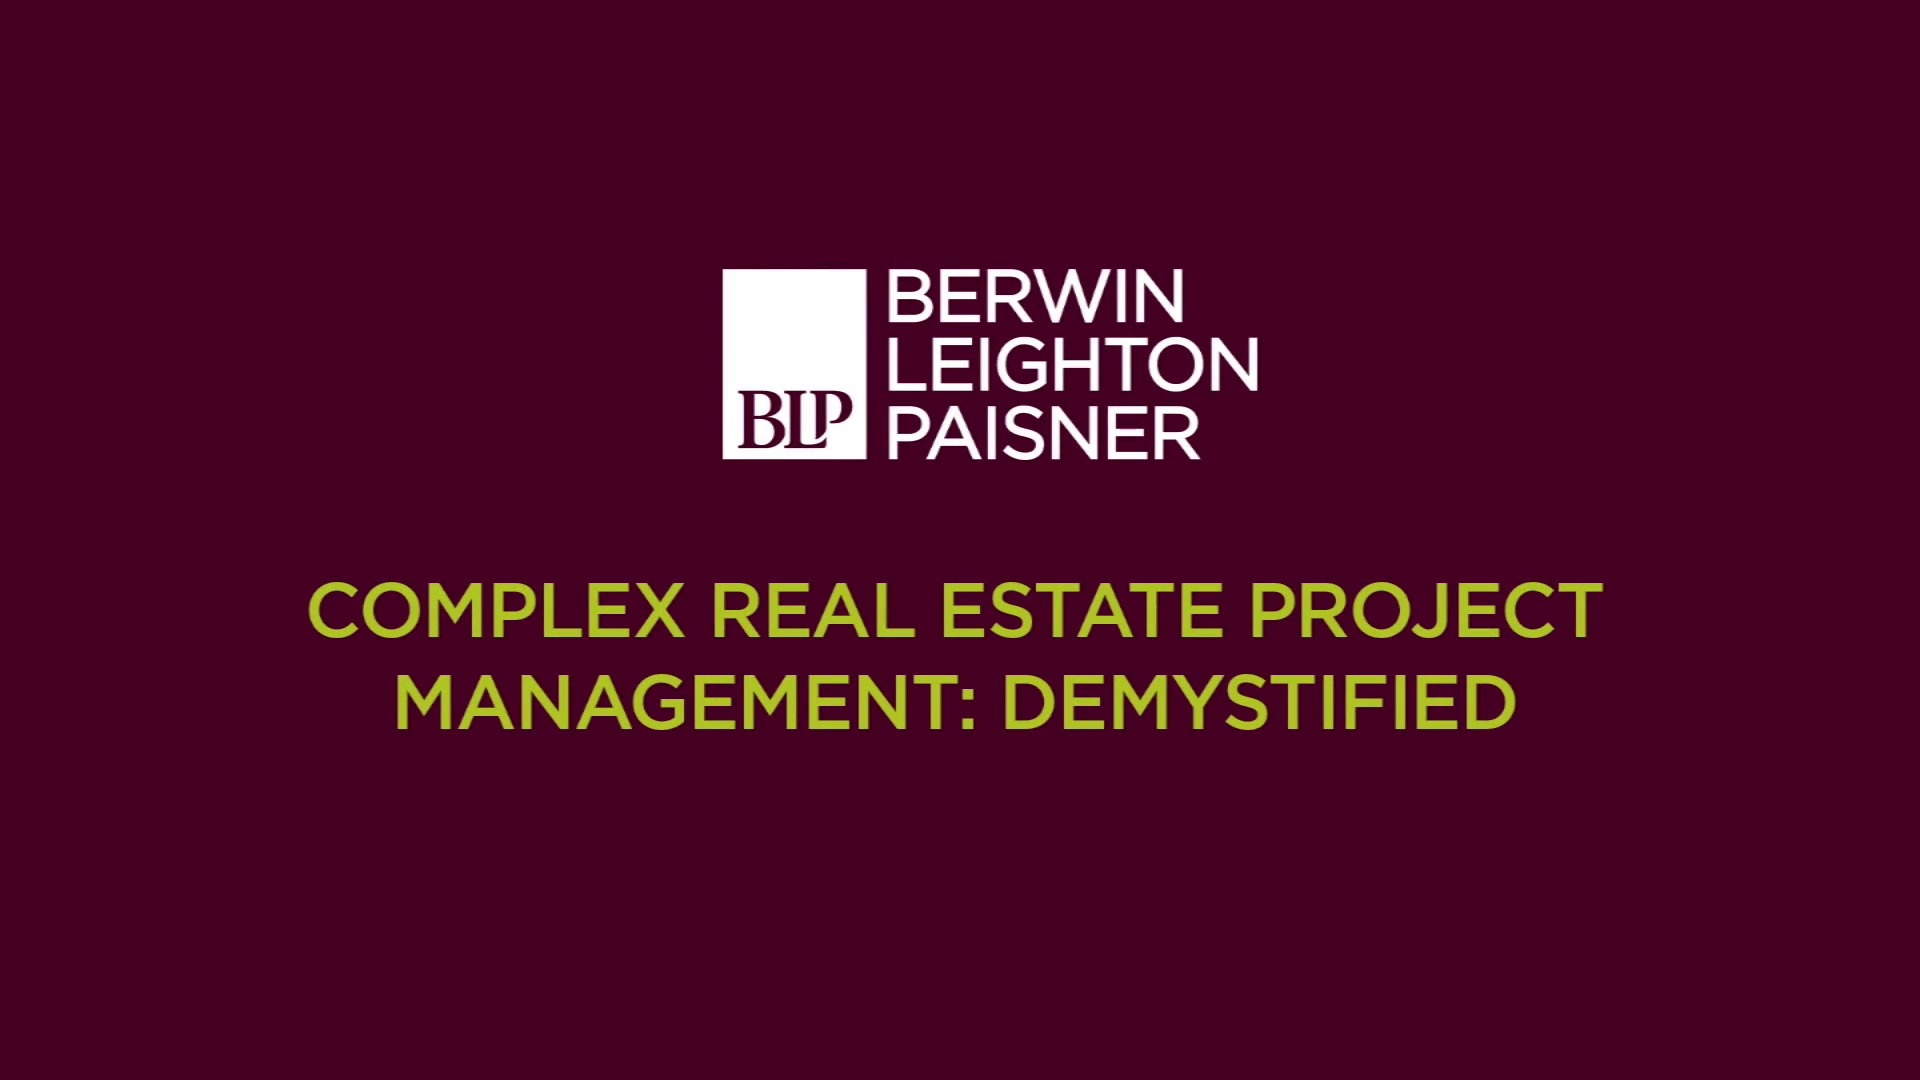 Still image from 'Demystifying real estate project management' video